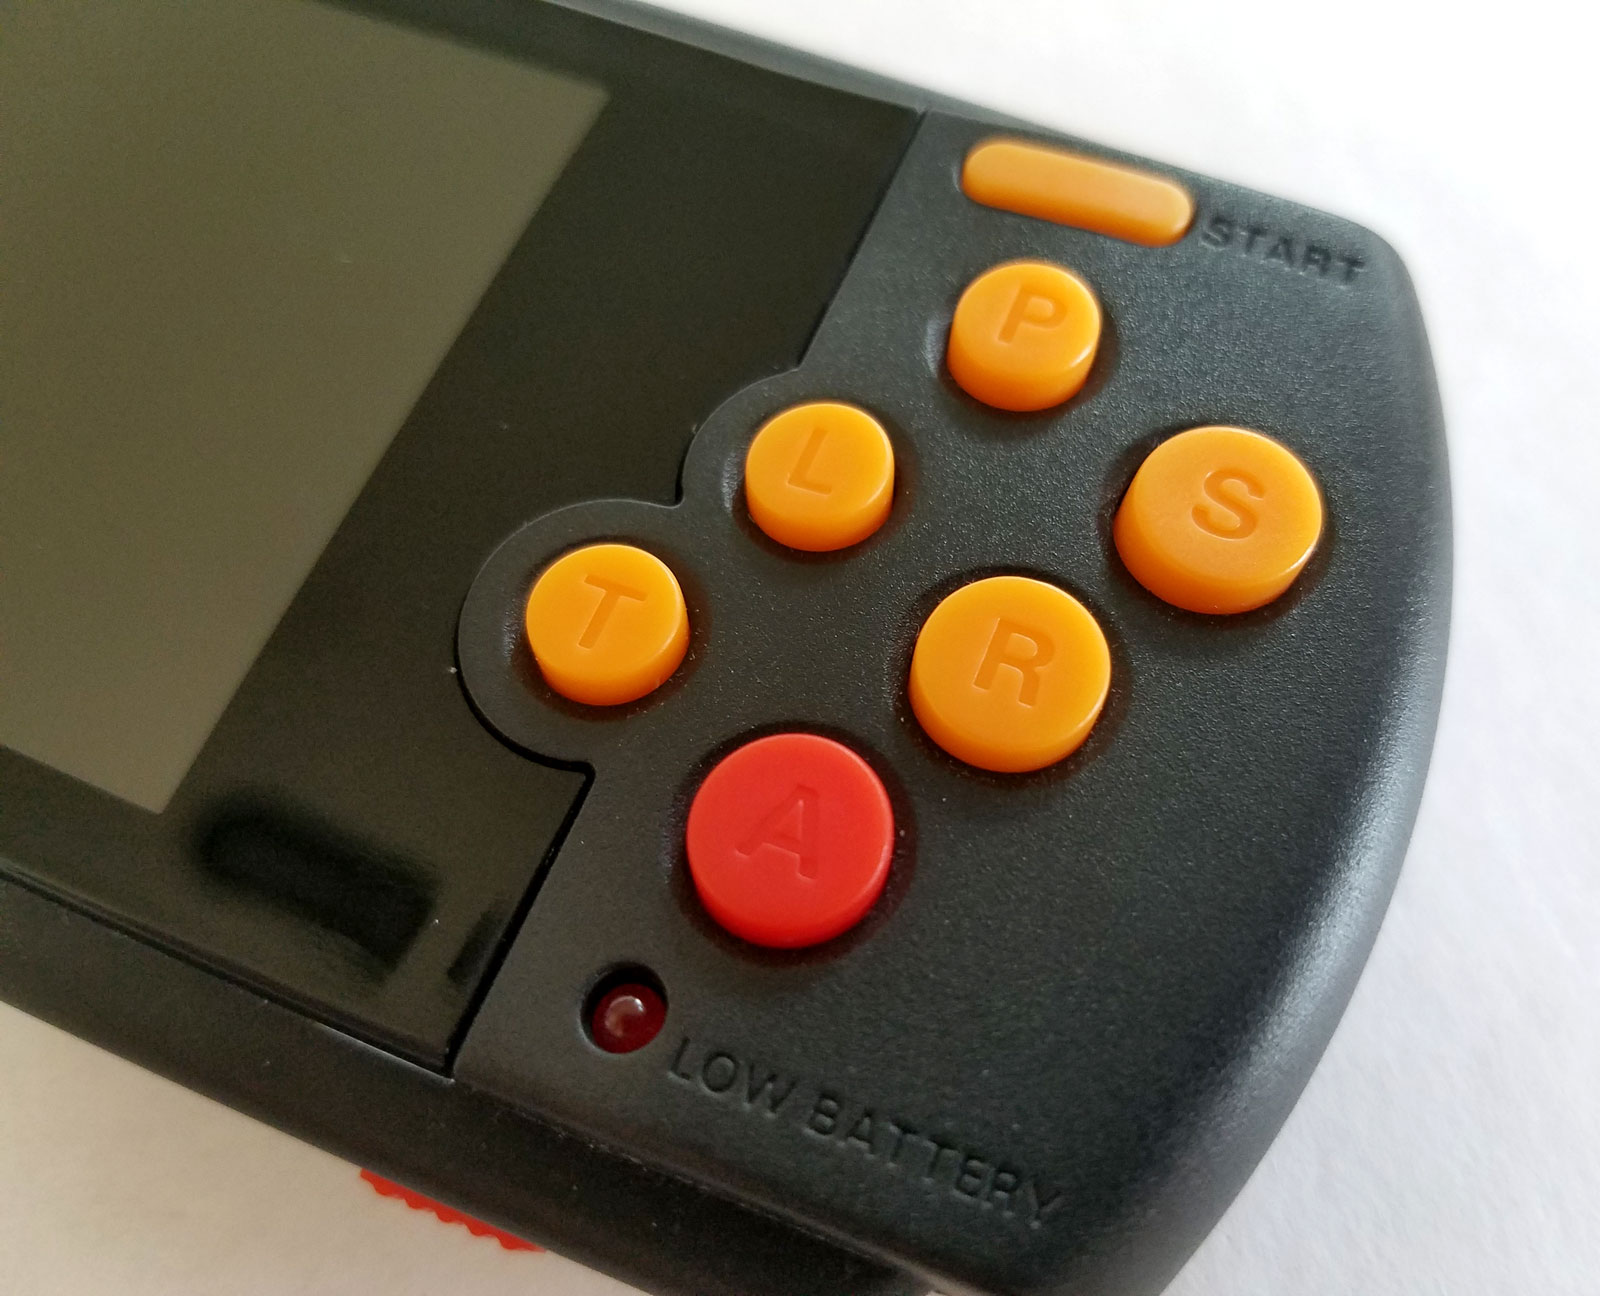 AtGames' #Flashback Portable features 70 built-in #Atari games & an